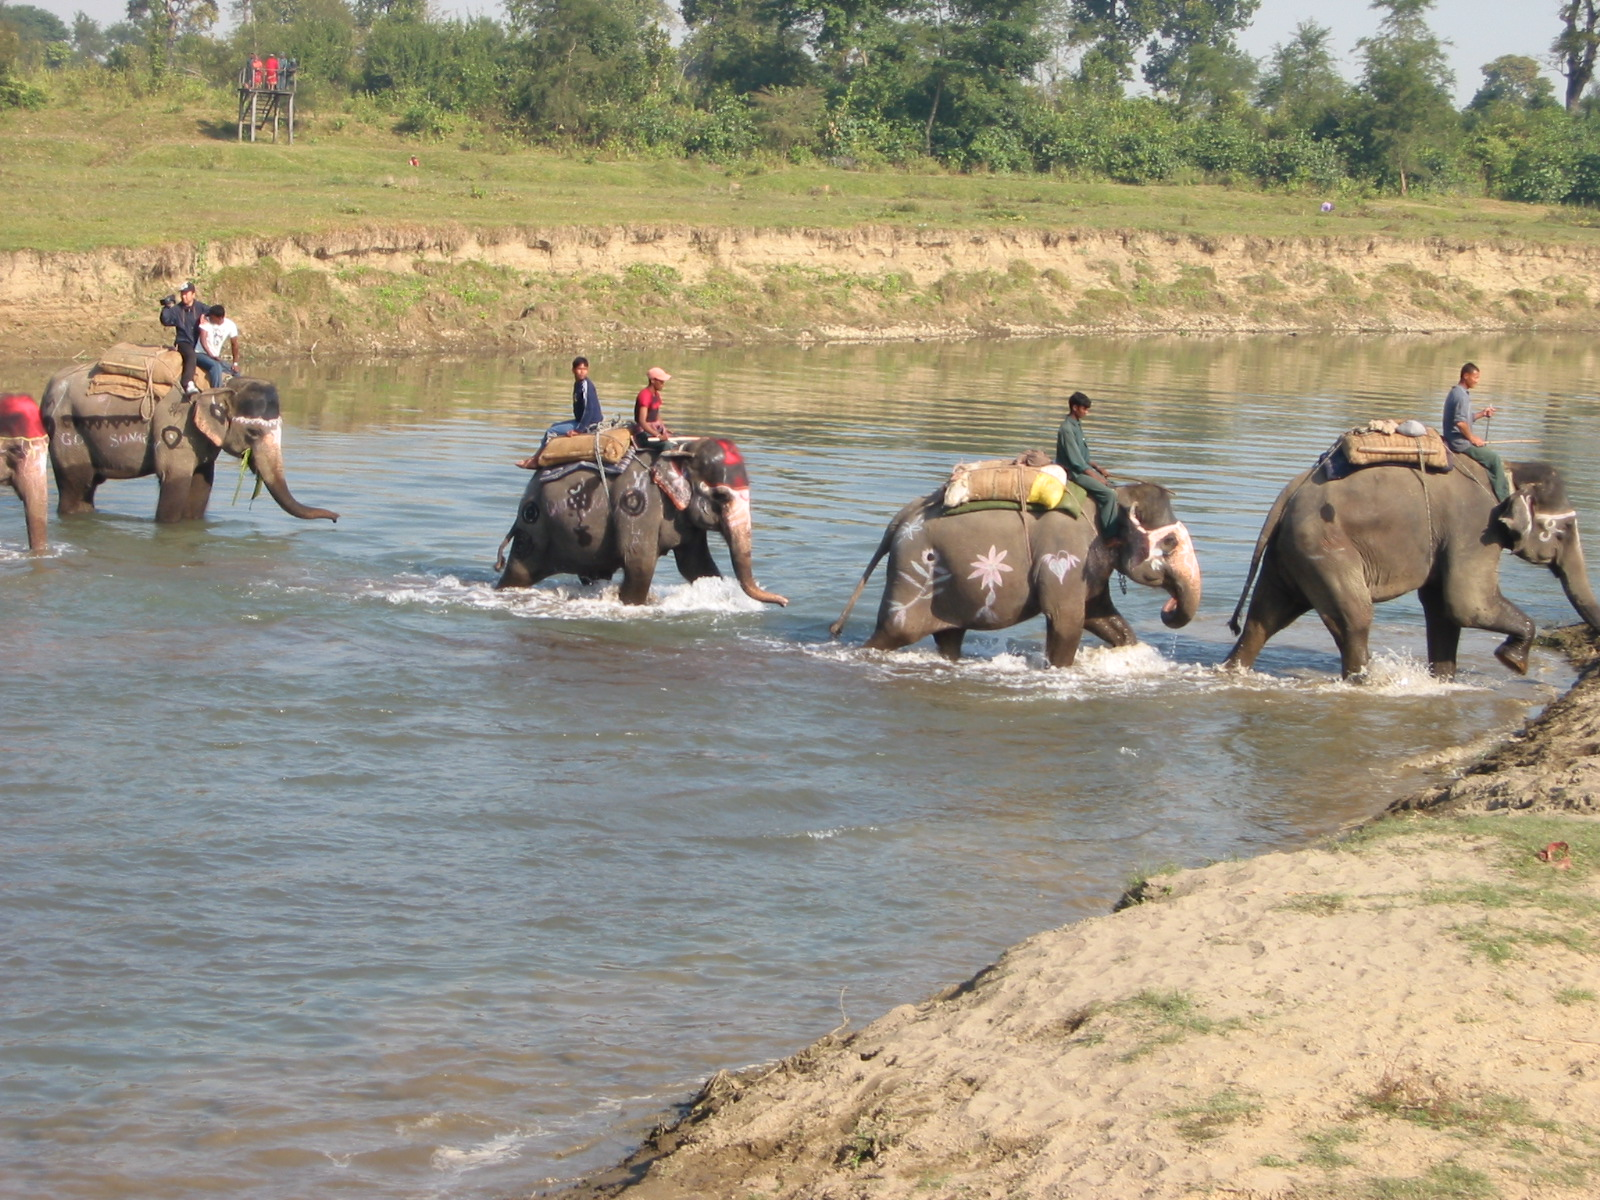 Riding elephants in Royal Chitwan National Park.